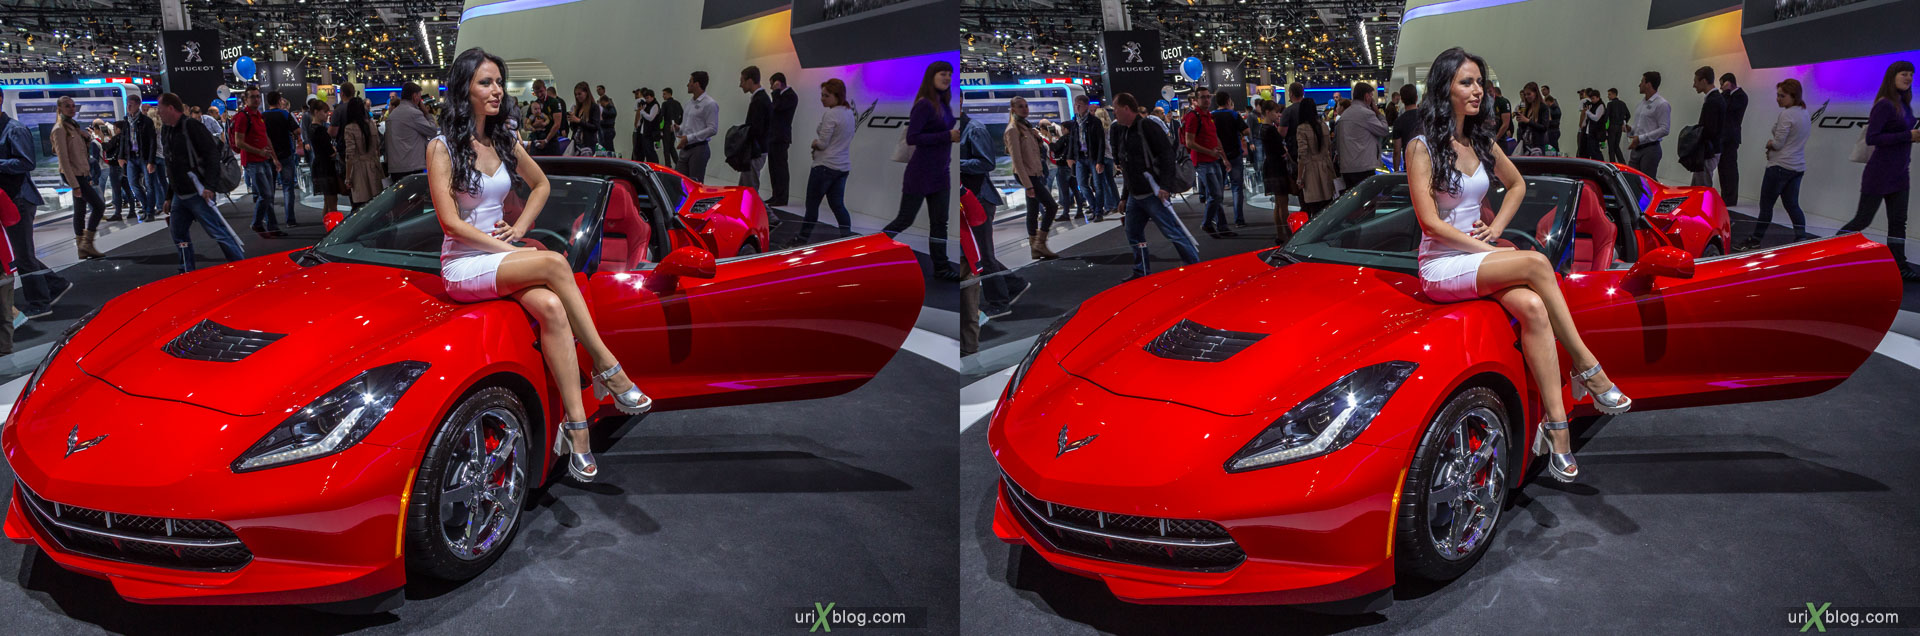 Chevrolet Corvette, Moscow International Automobile Salon 2014, MIAS 2014, girls, models, Crocus Expo, Moscow, Russia, 3D, stereo pair, cross-eyed, crossview, cross view stereo pair, stereoscopic, 2014